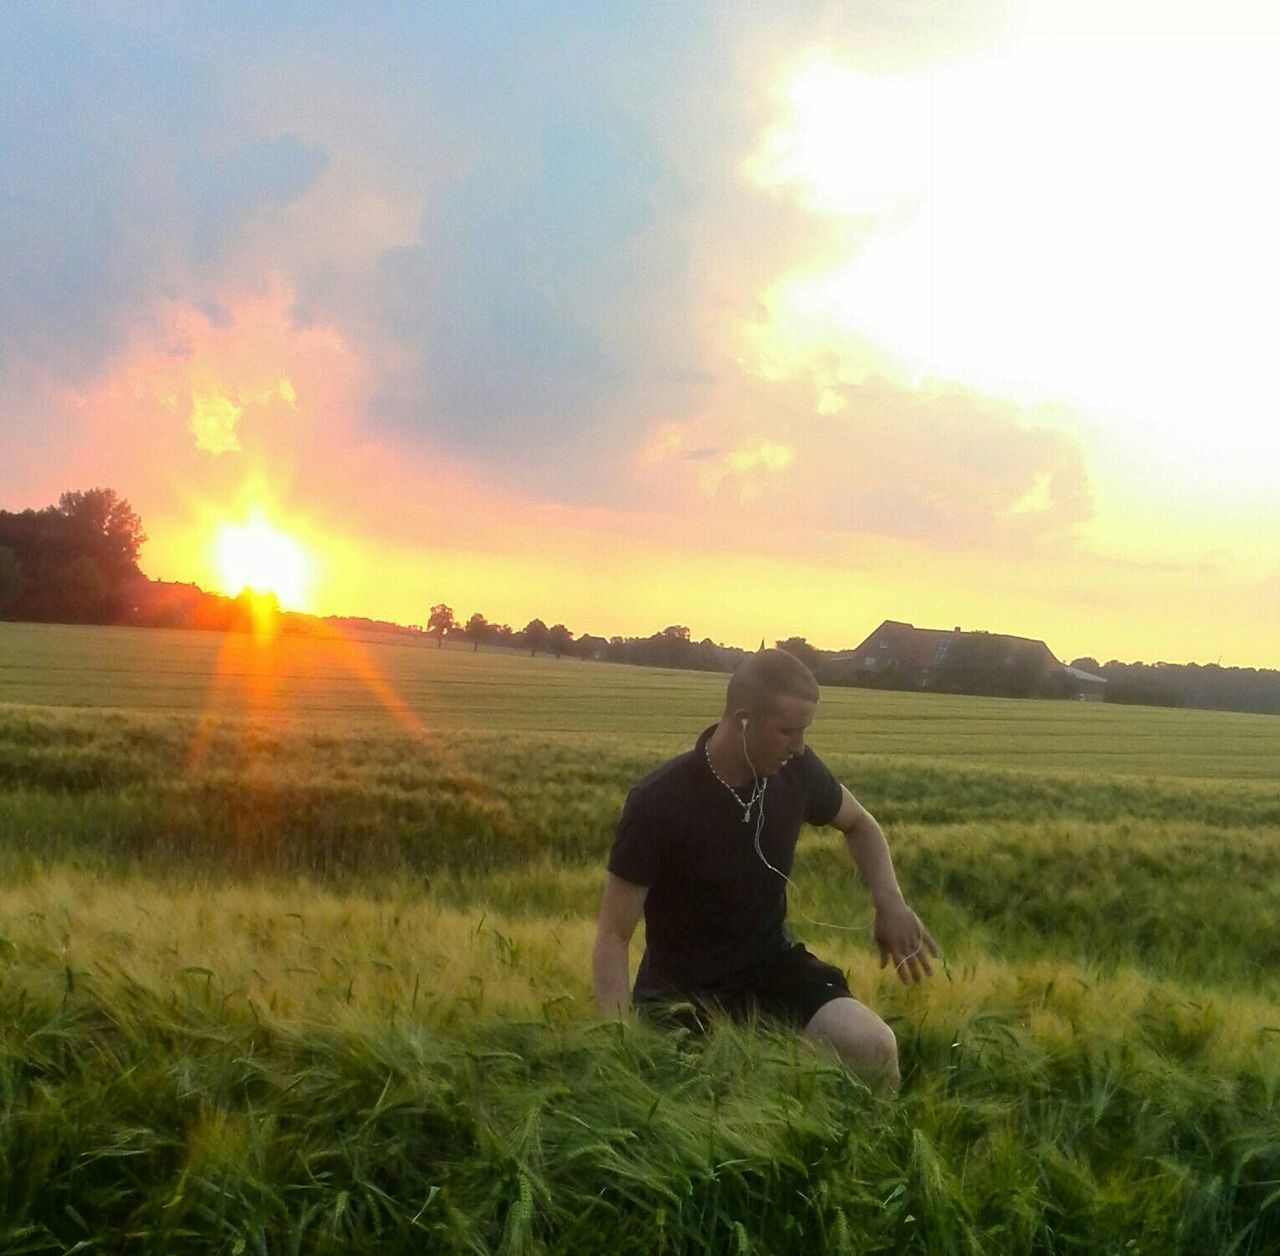 grass, field, sunset, nature, sky, landscape, growth, sun, outdoors, sunlight, one person, beauty in nature, tree, day, people